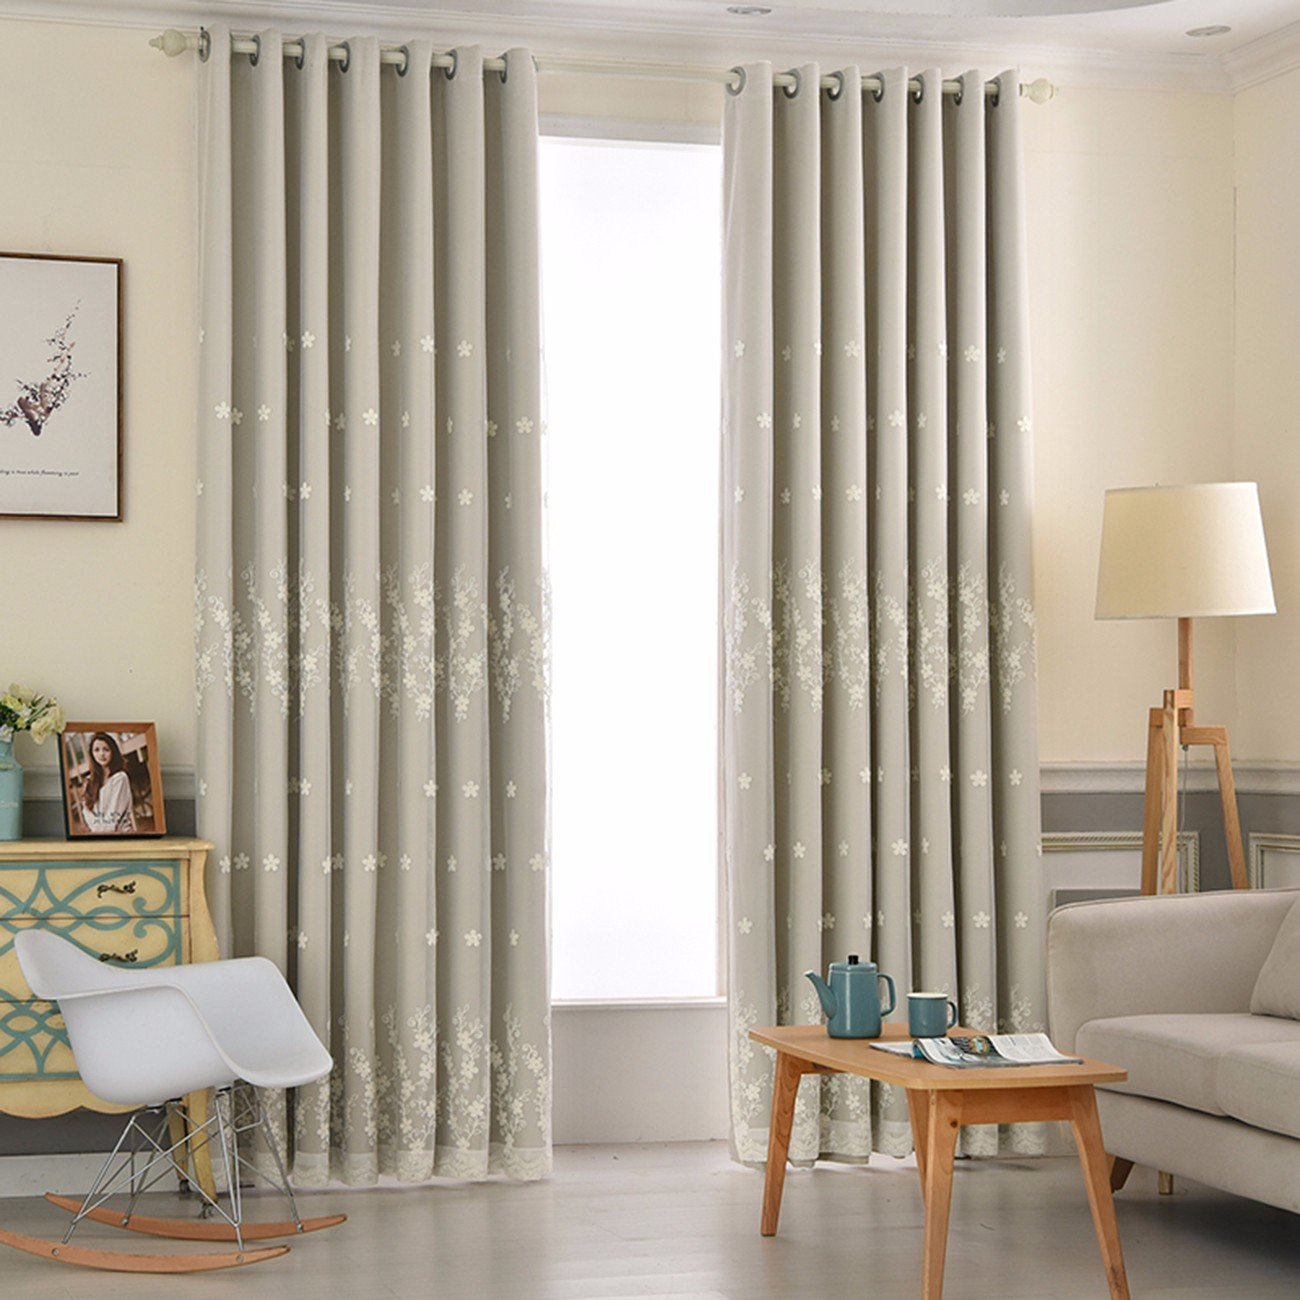 X 2 Curtain Curtain Cloth Curtain Two Layers Double Deck American Country Country Rope Embroidery All Shading,A,150 X 270 Cm W X H